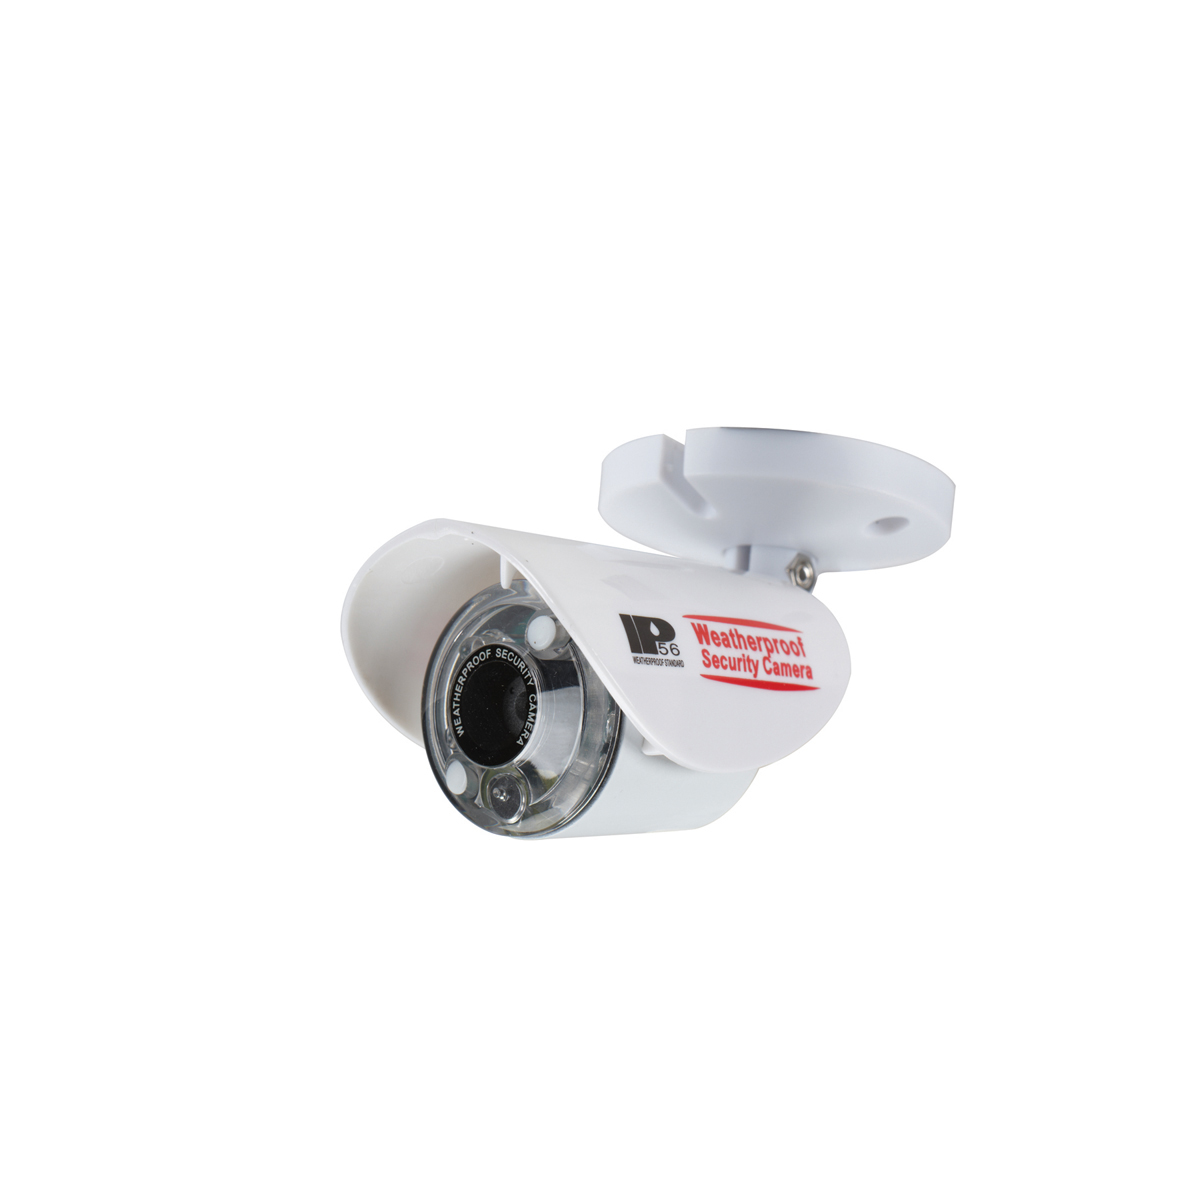 weatherproof security camera with night vision  vision camera wire diagram